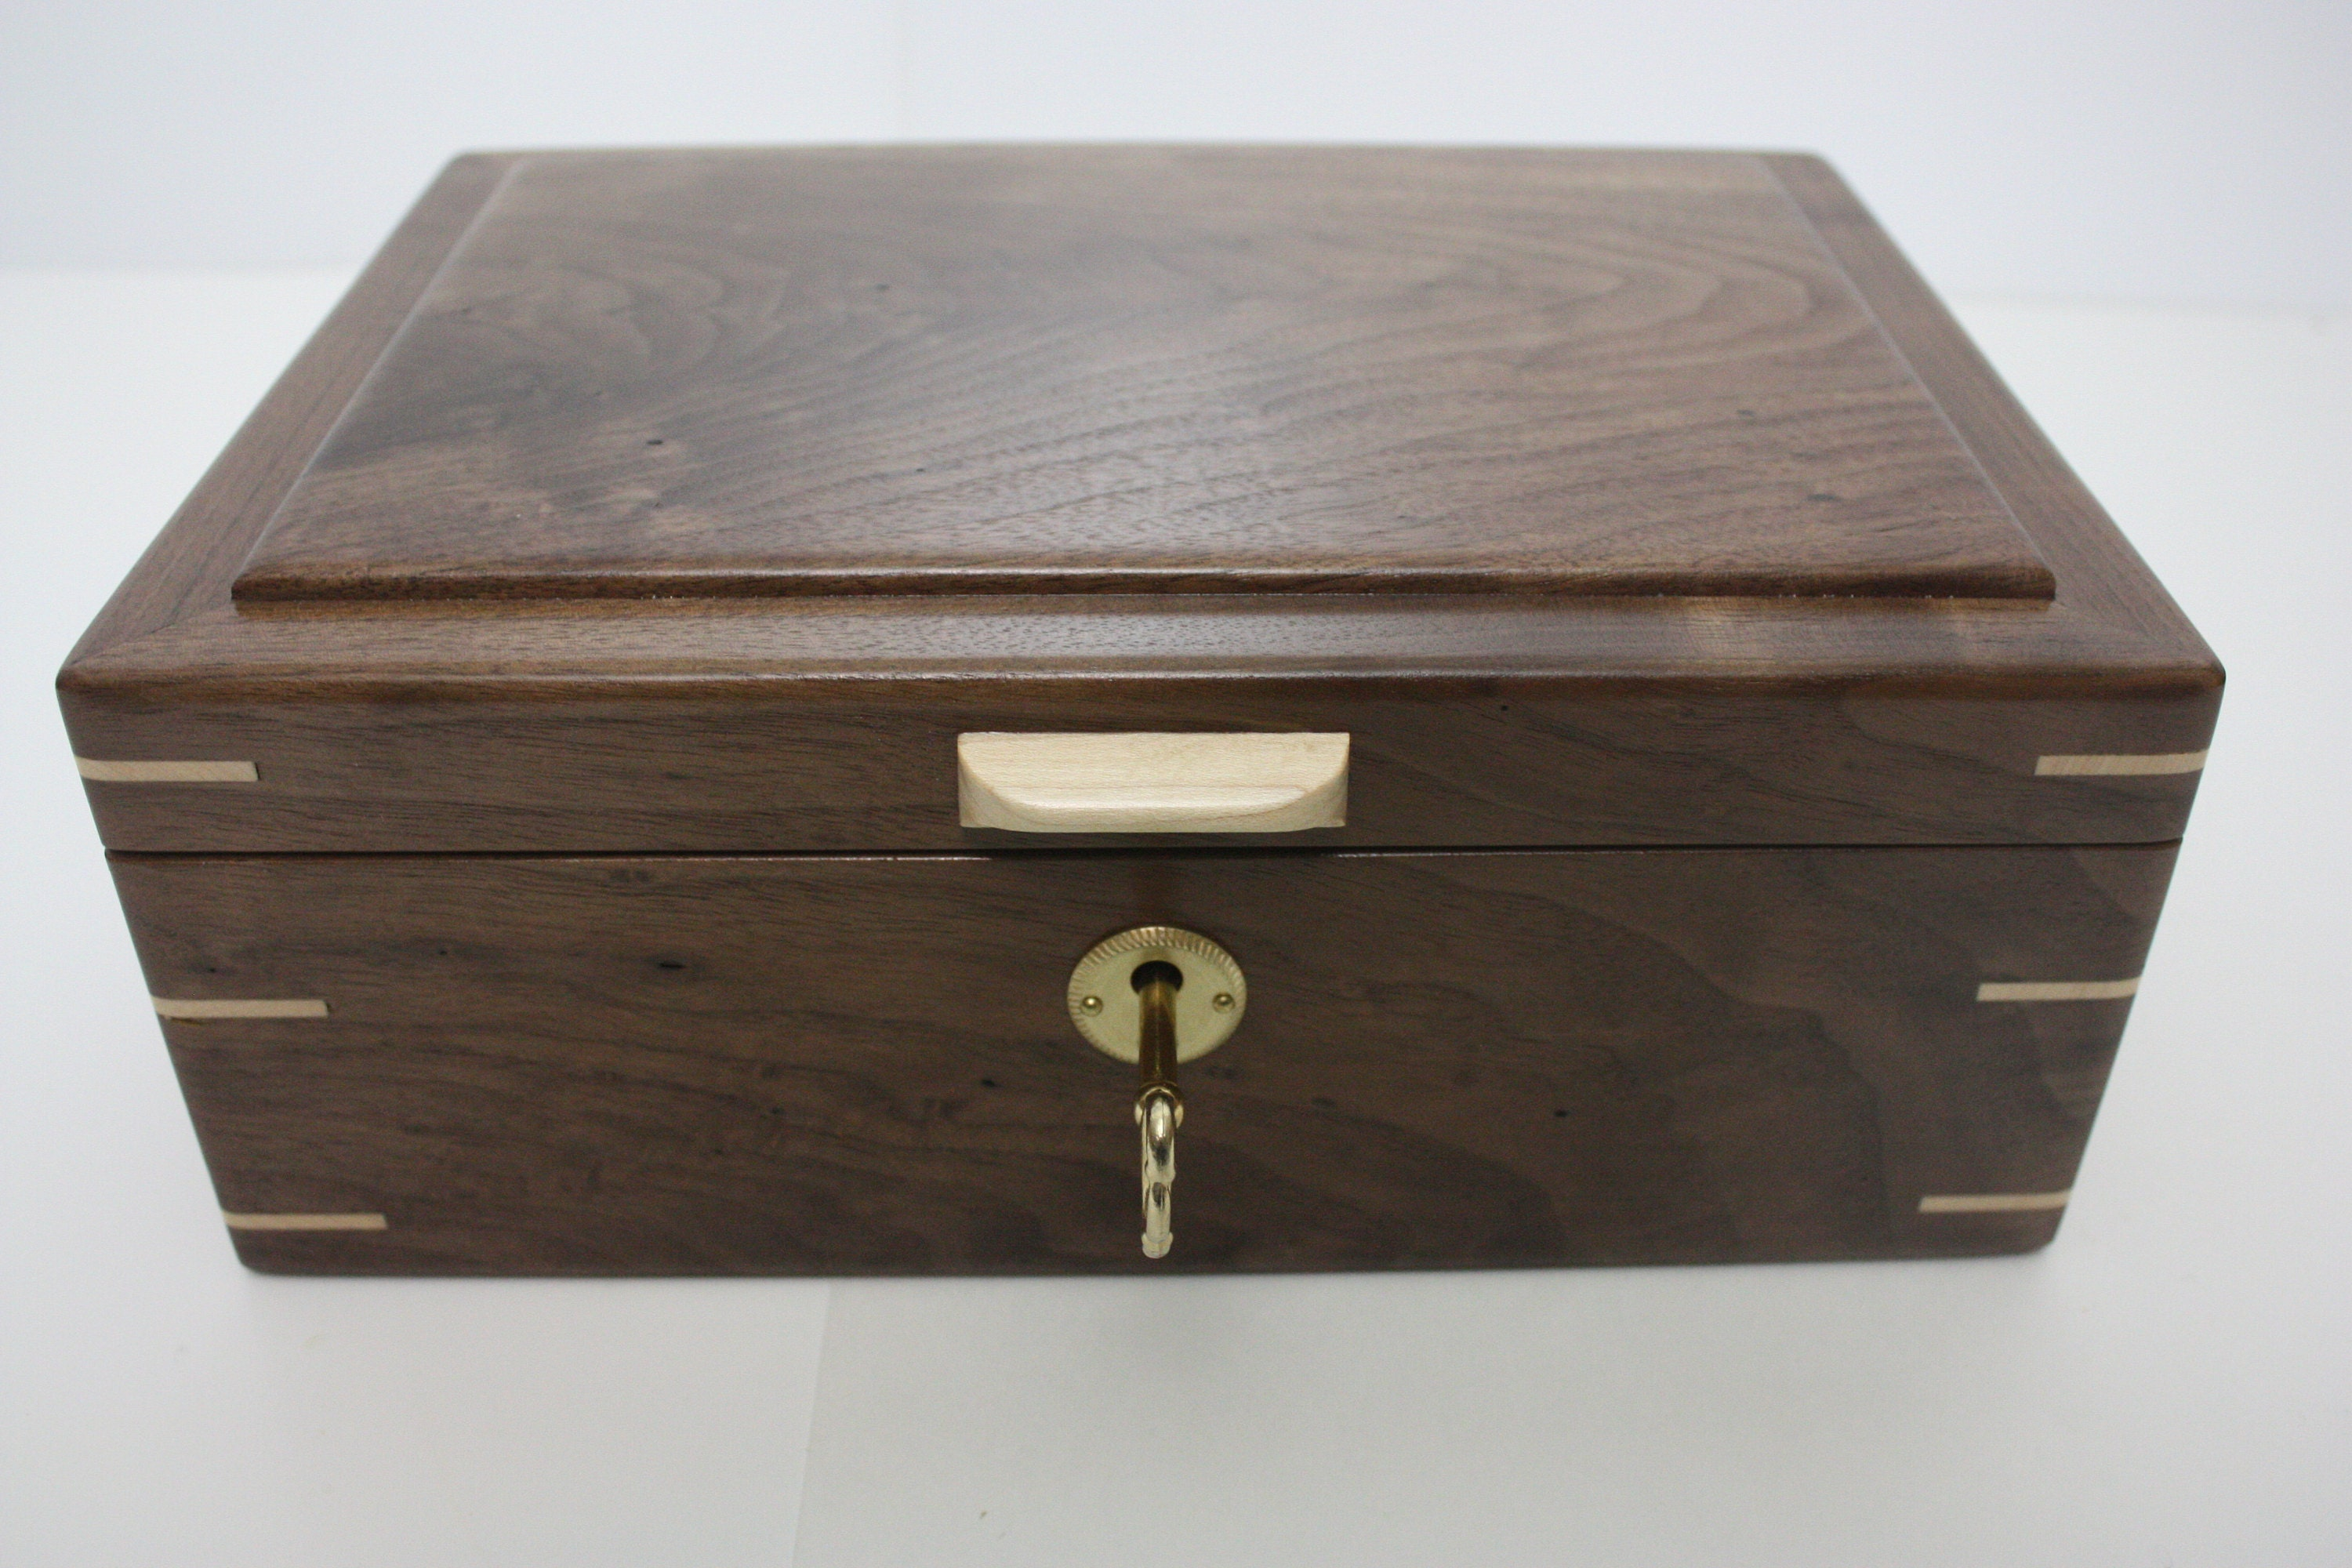 Locking Handcrafted Black Walnut Box